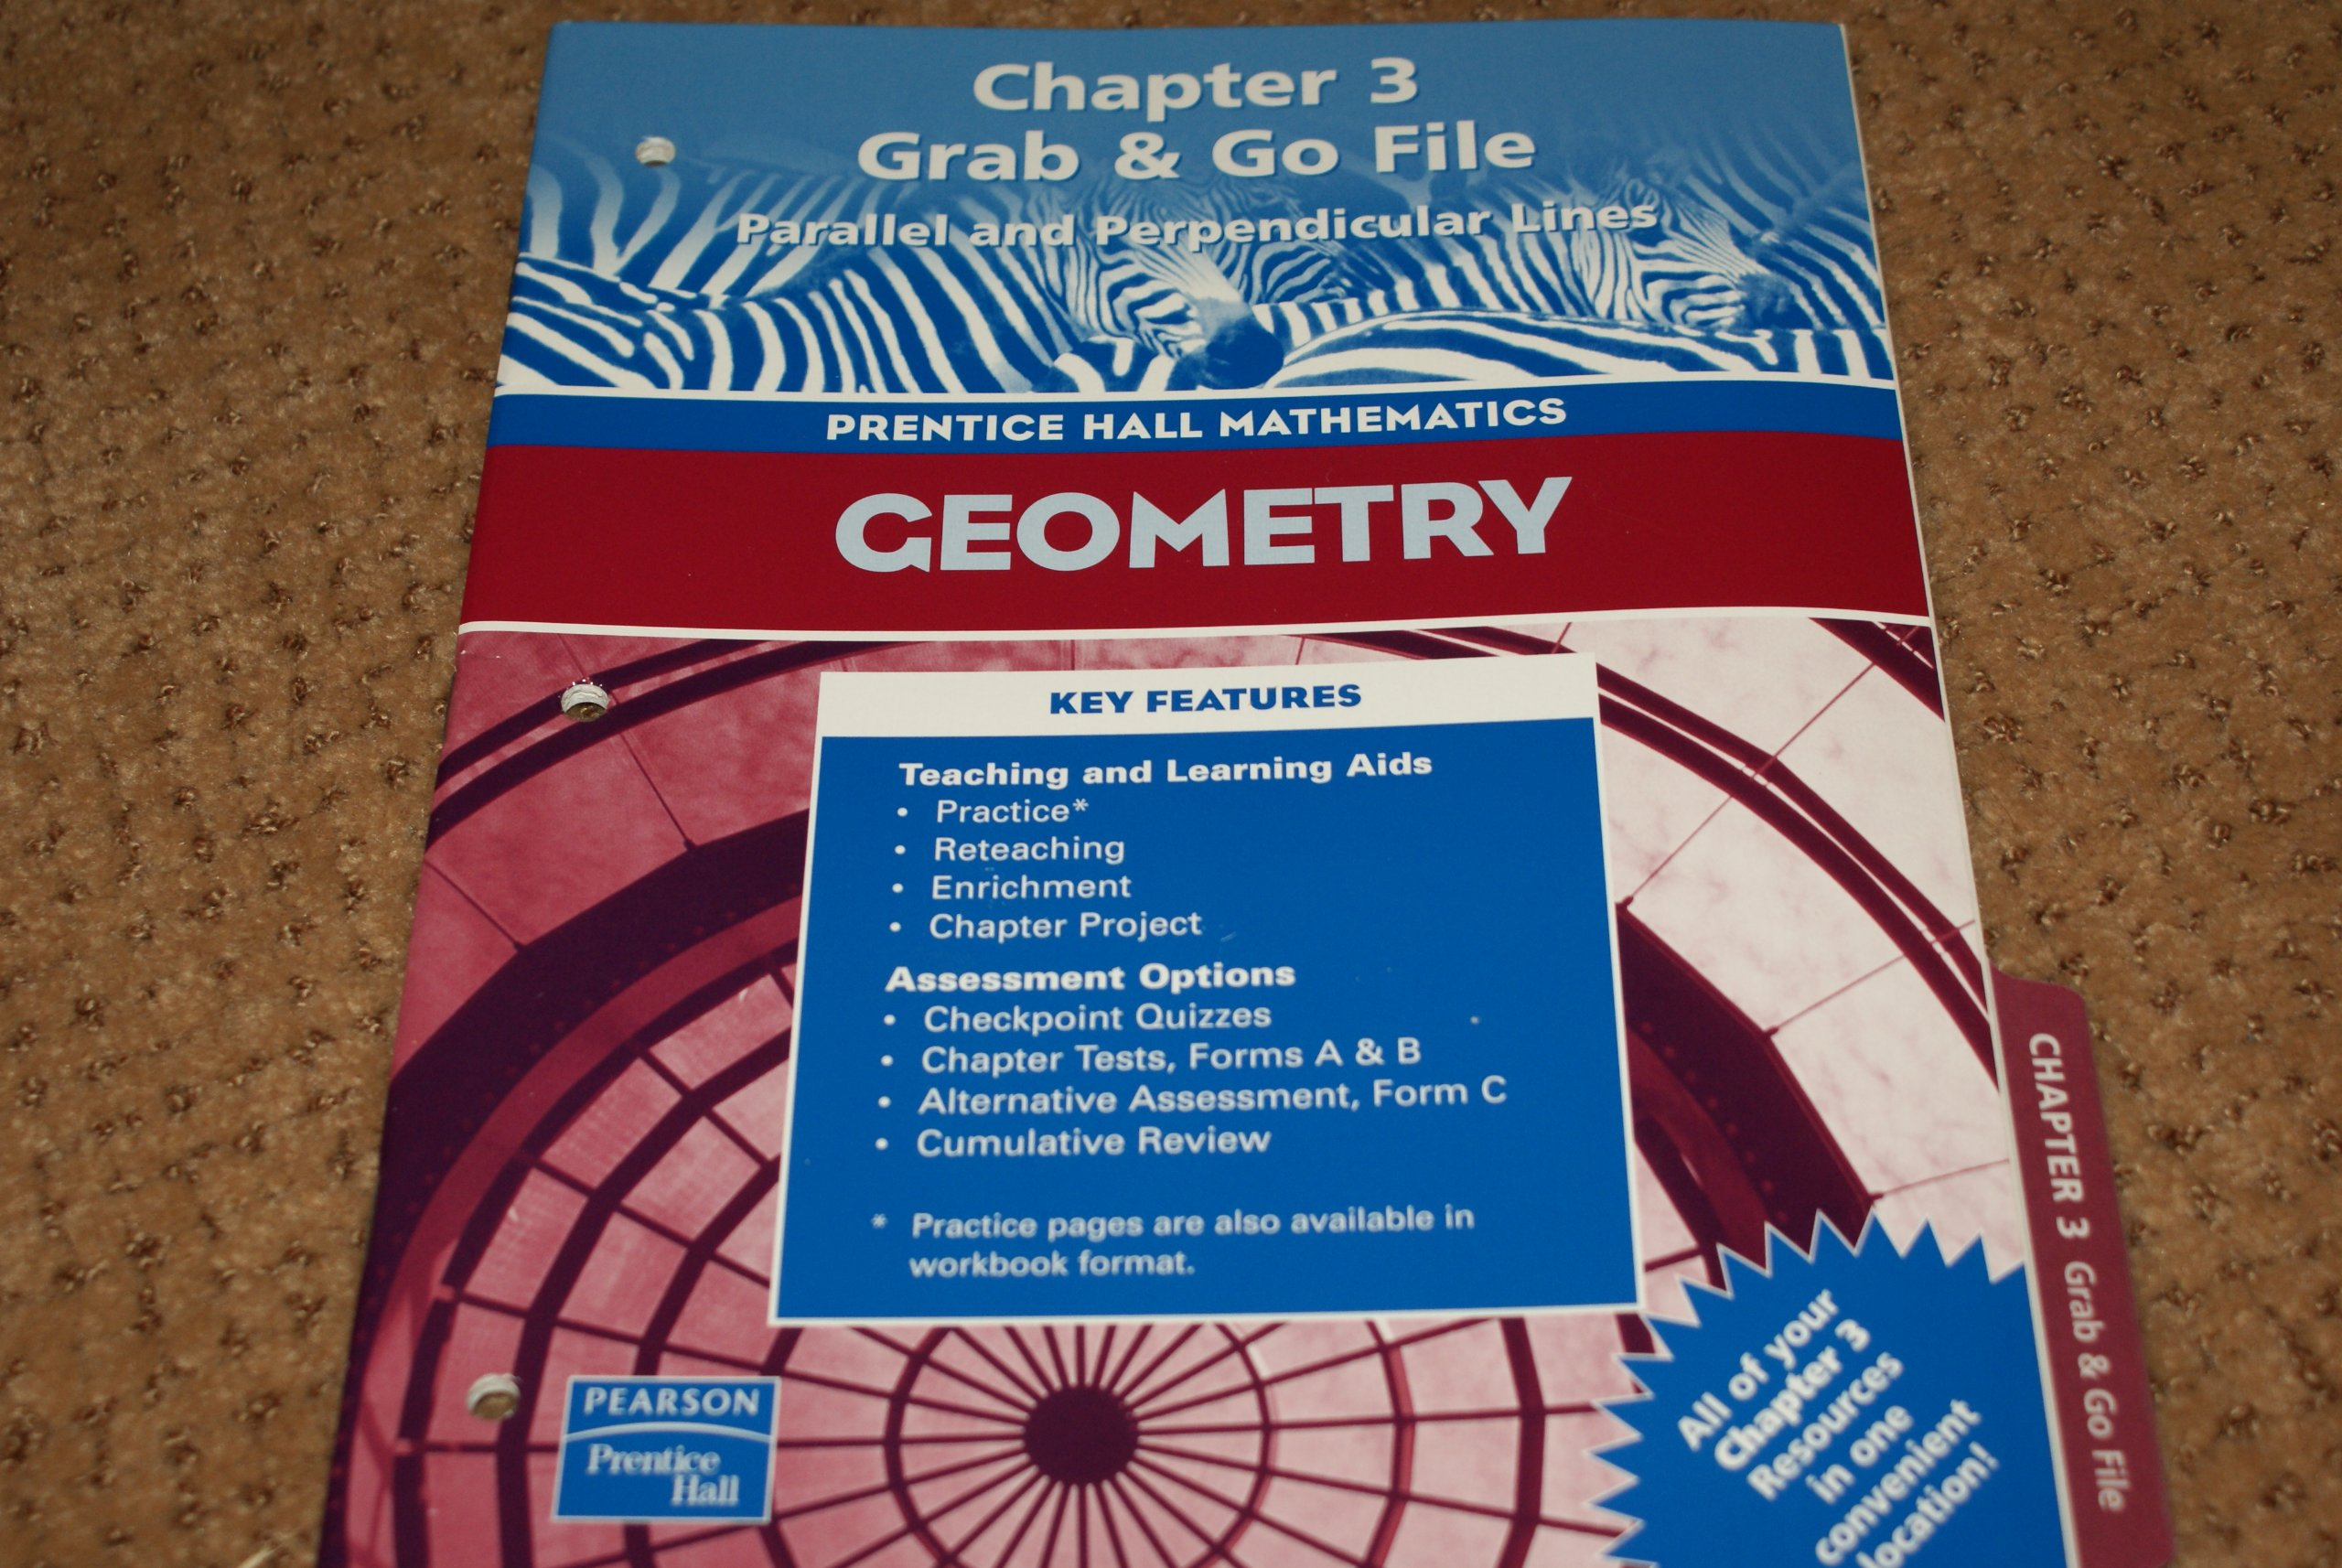 Prentice Hall Mathematics Geometry: grab & go file Chapter 3 Parallel and Perpendicular Lines 2005 ebook